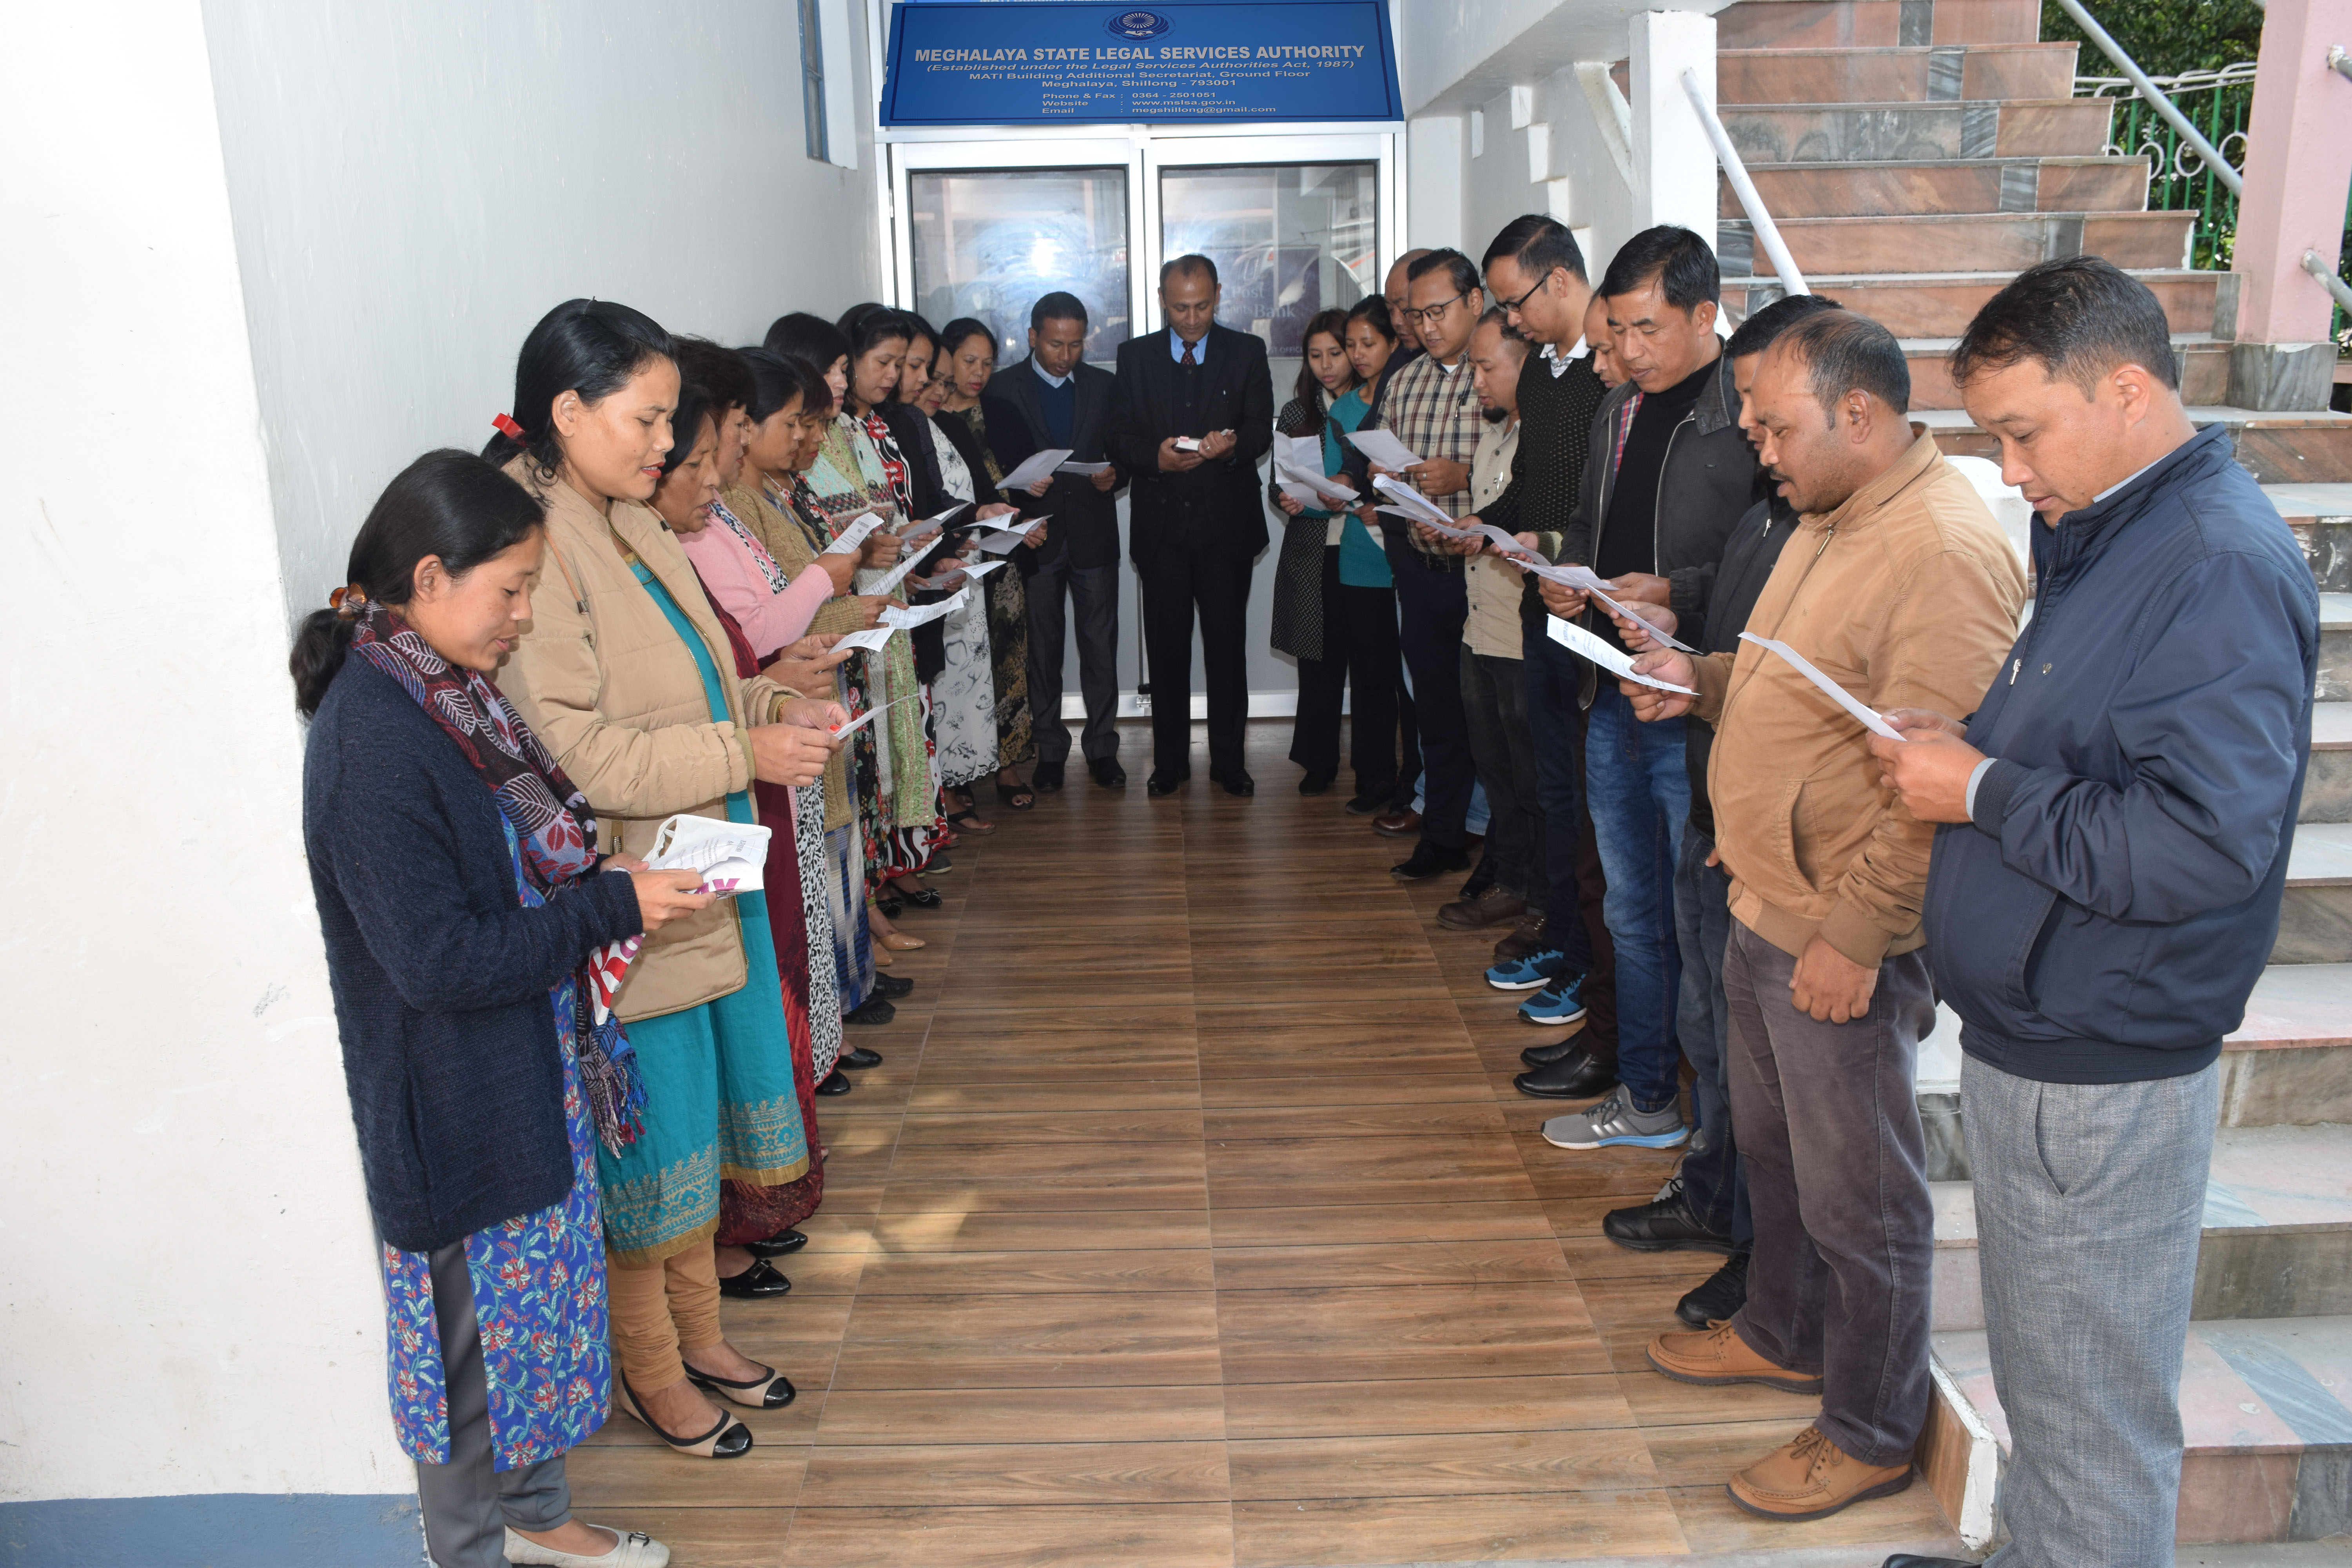 Reciting the Preamble during the Constitution Day on the 26th November, 2019 by MSLSA staff along with the Member Secretary